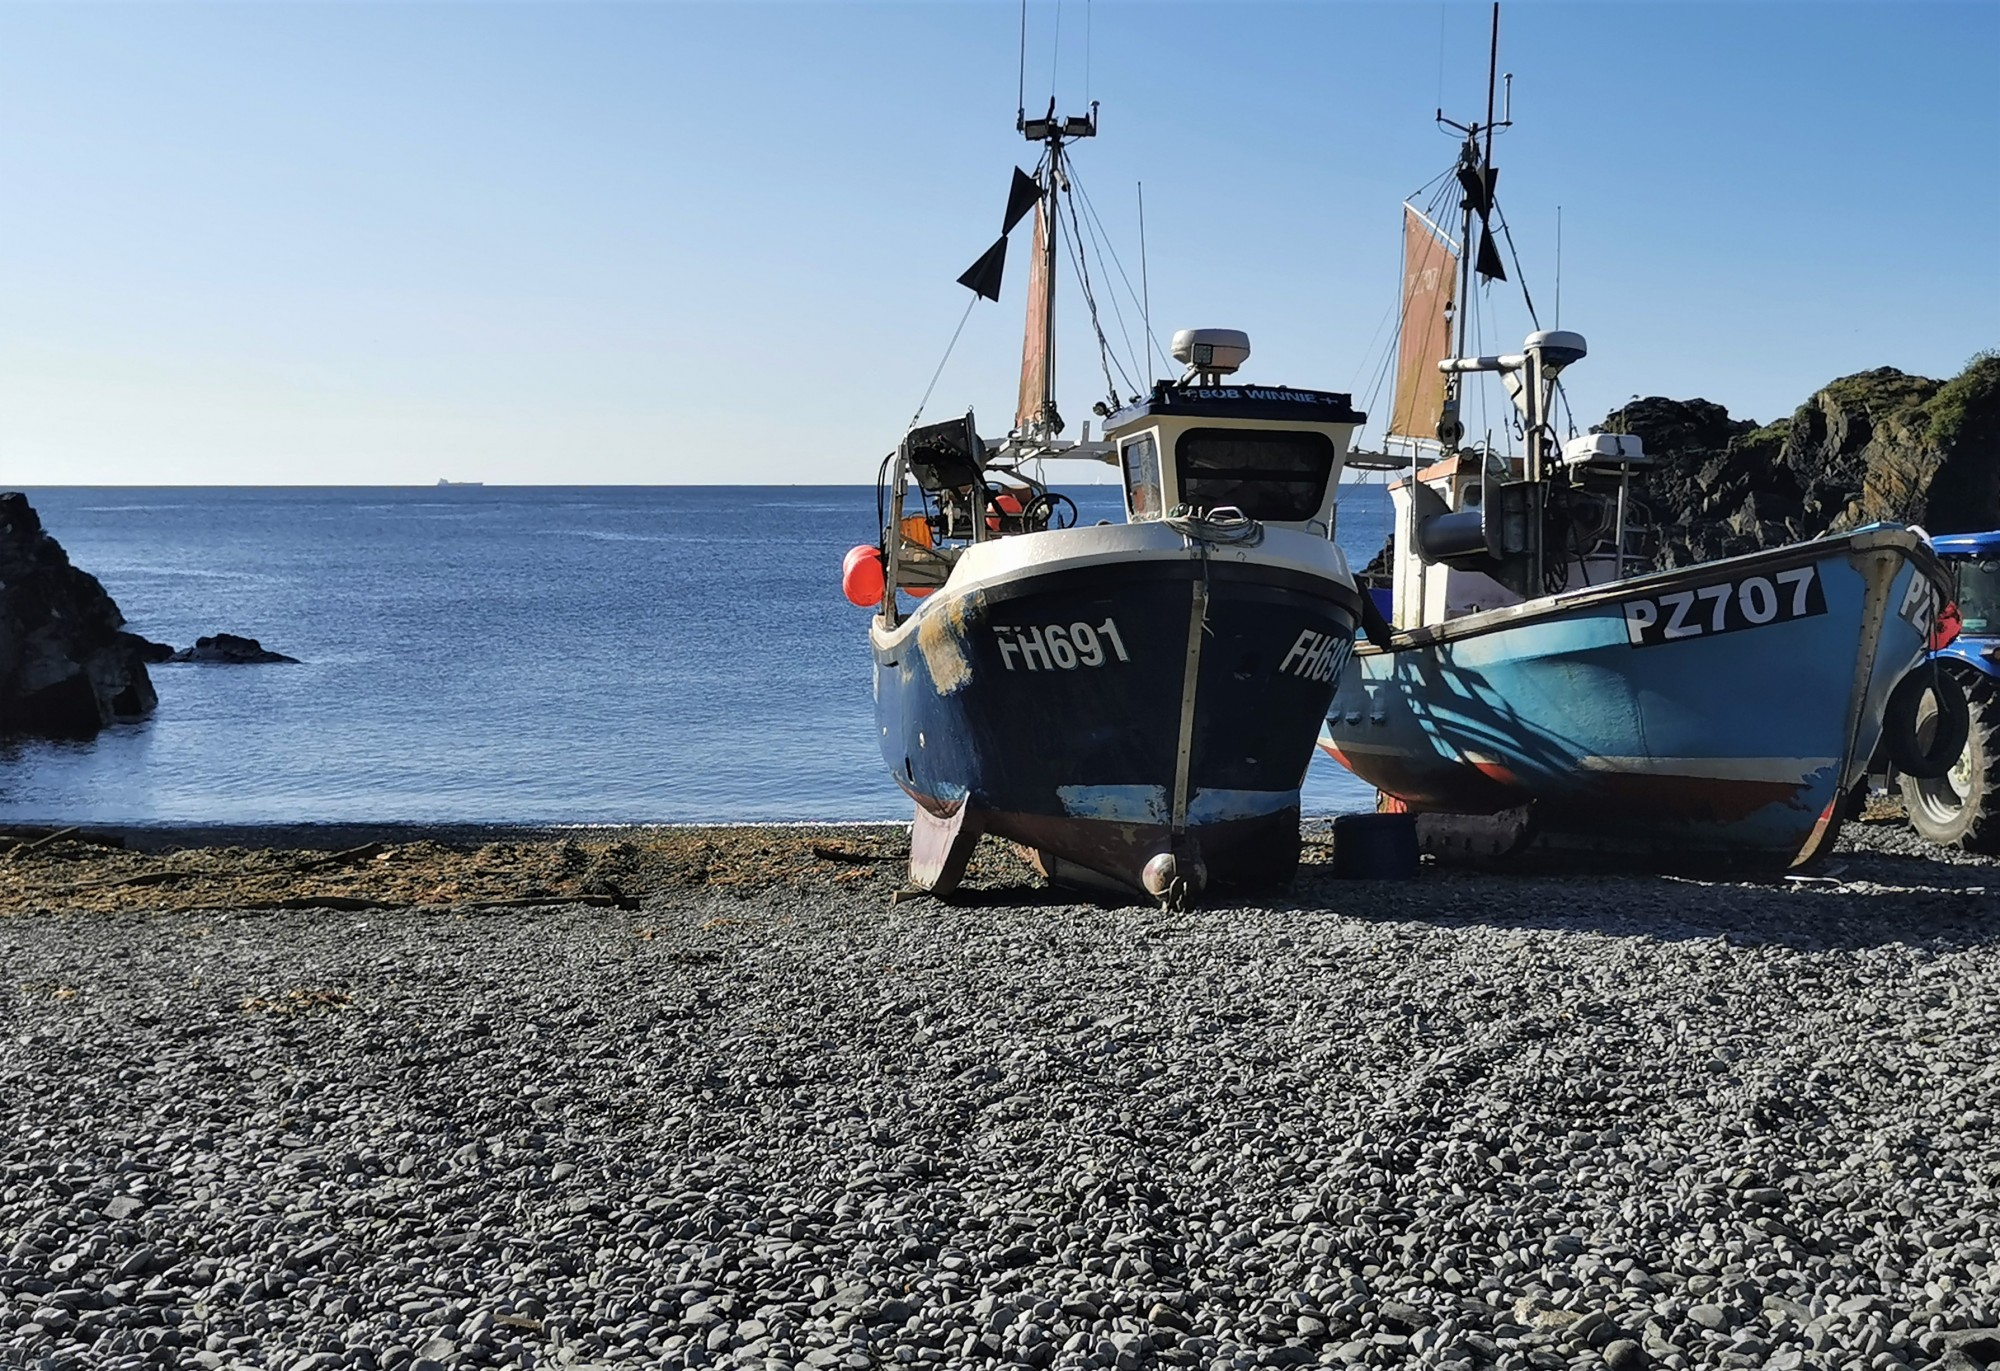 Boats on the beach at Cadgwith